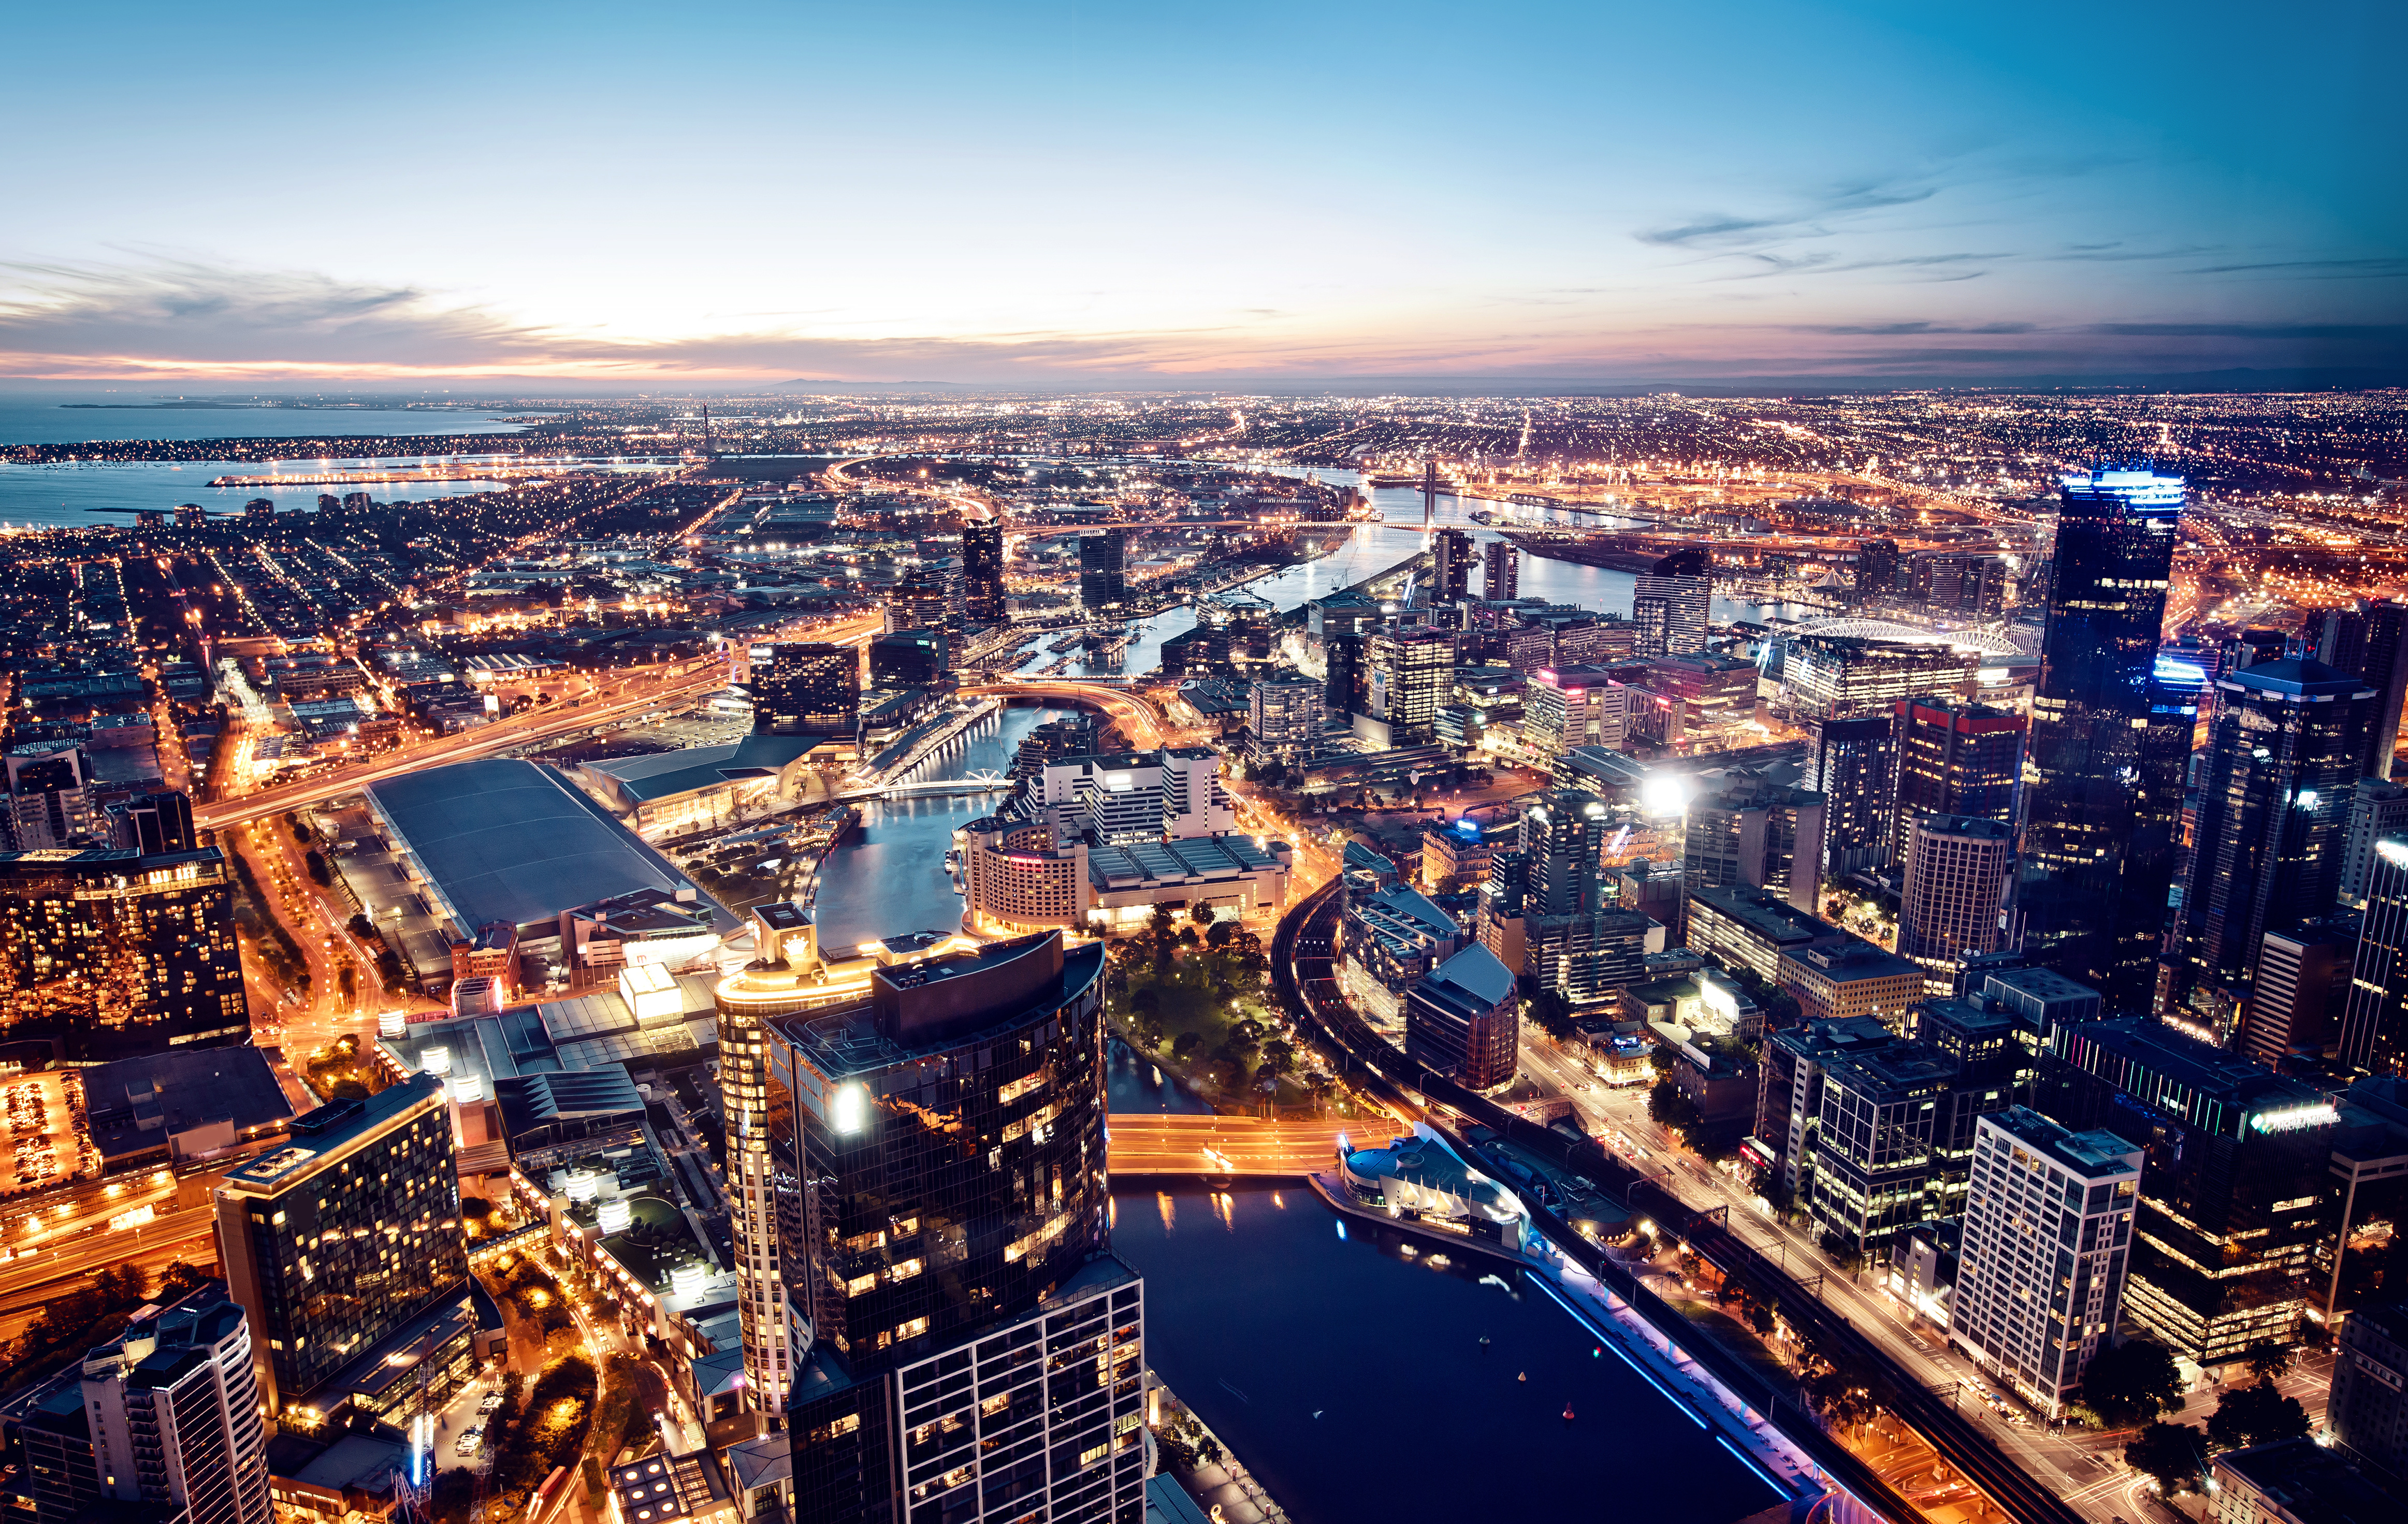 Article image for Growing pains: Unchecked growth of Melbourne could cause big problems